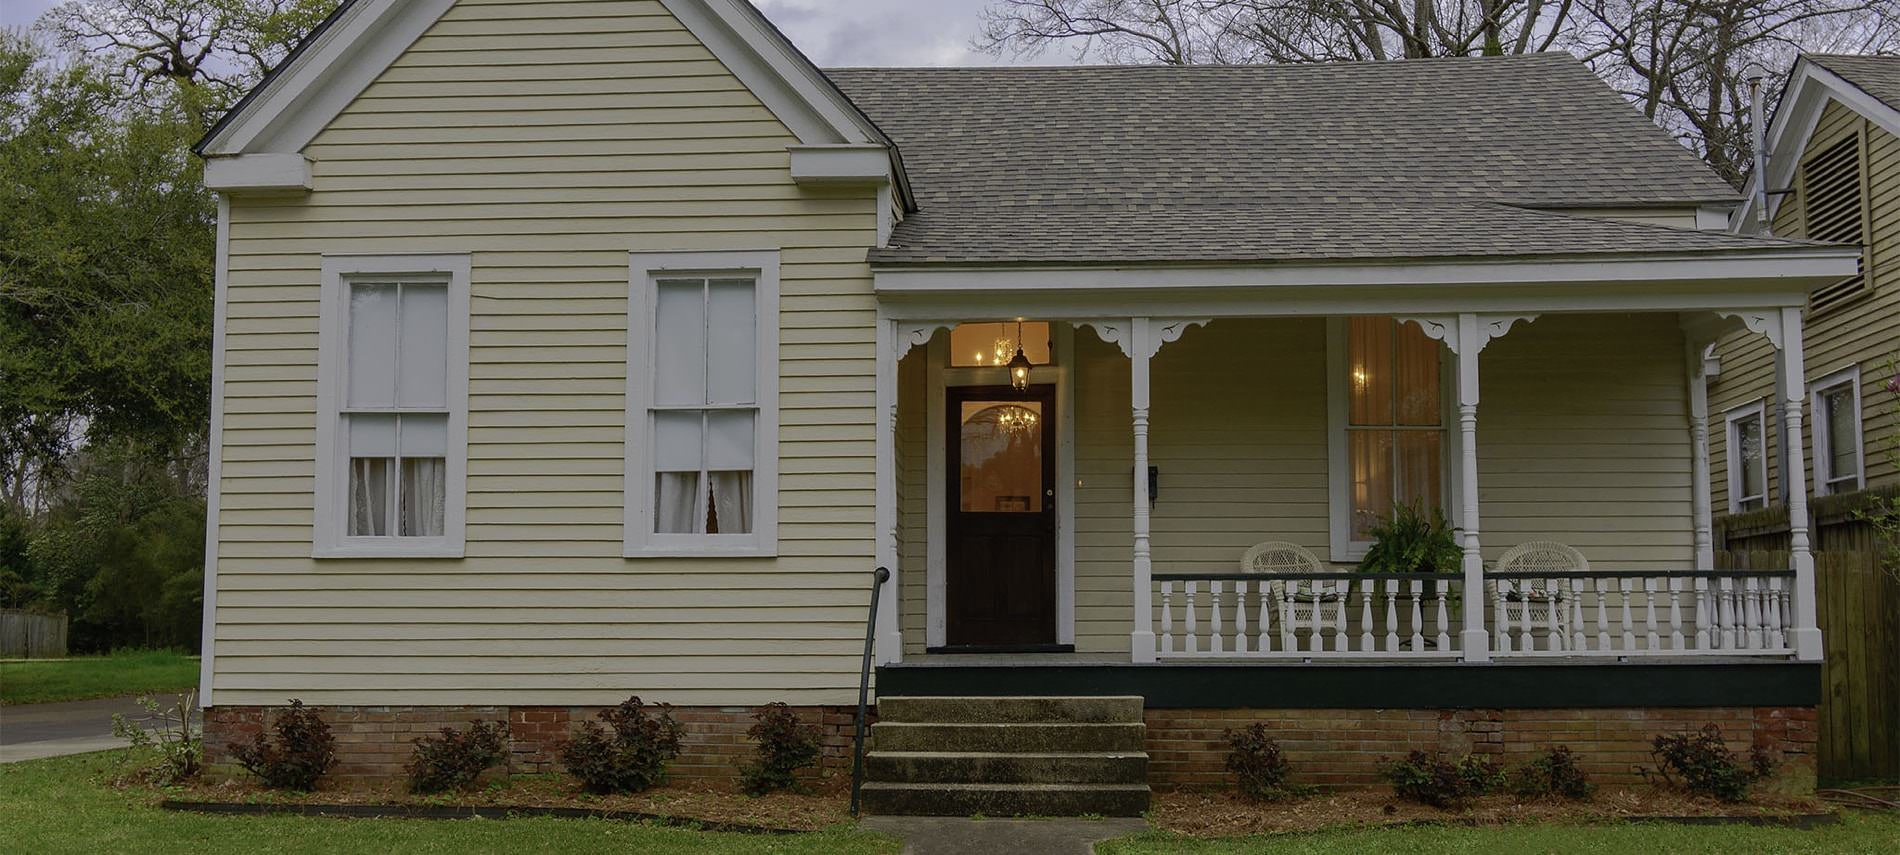 View of b&b porch with dark wood door, cream wicker furniture, cream siding and white trim with small bushes lining yard